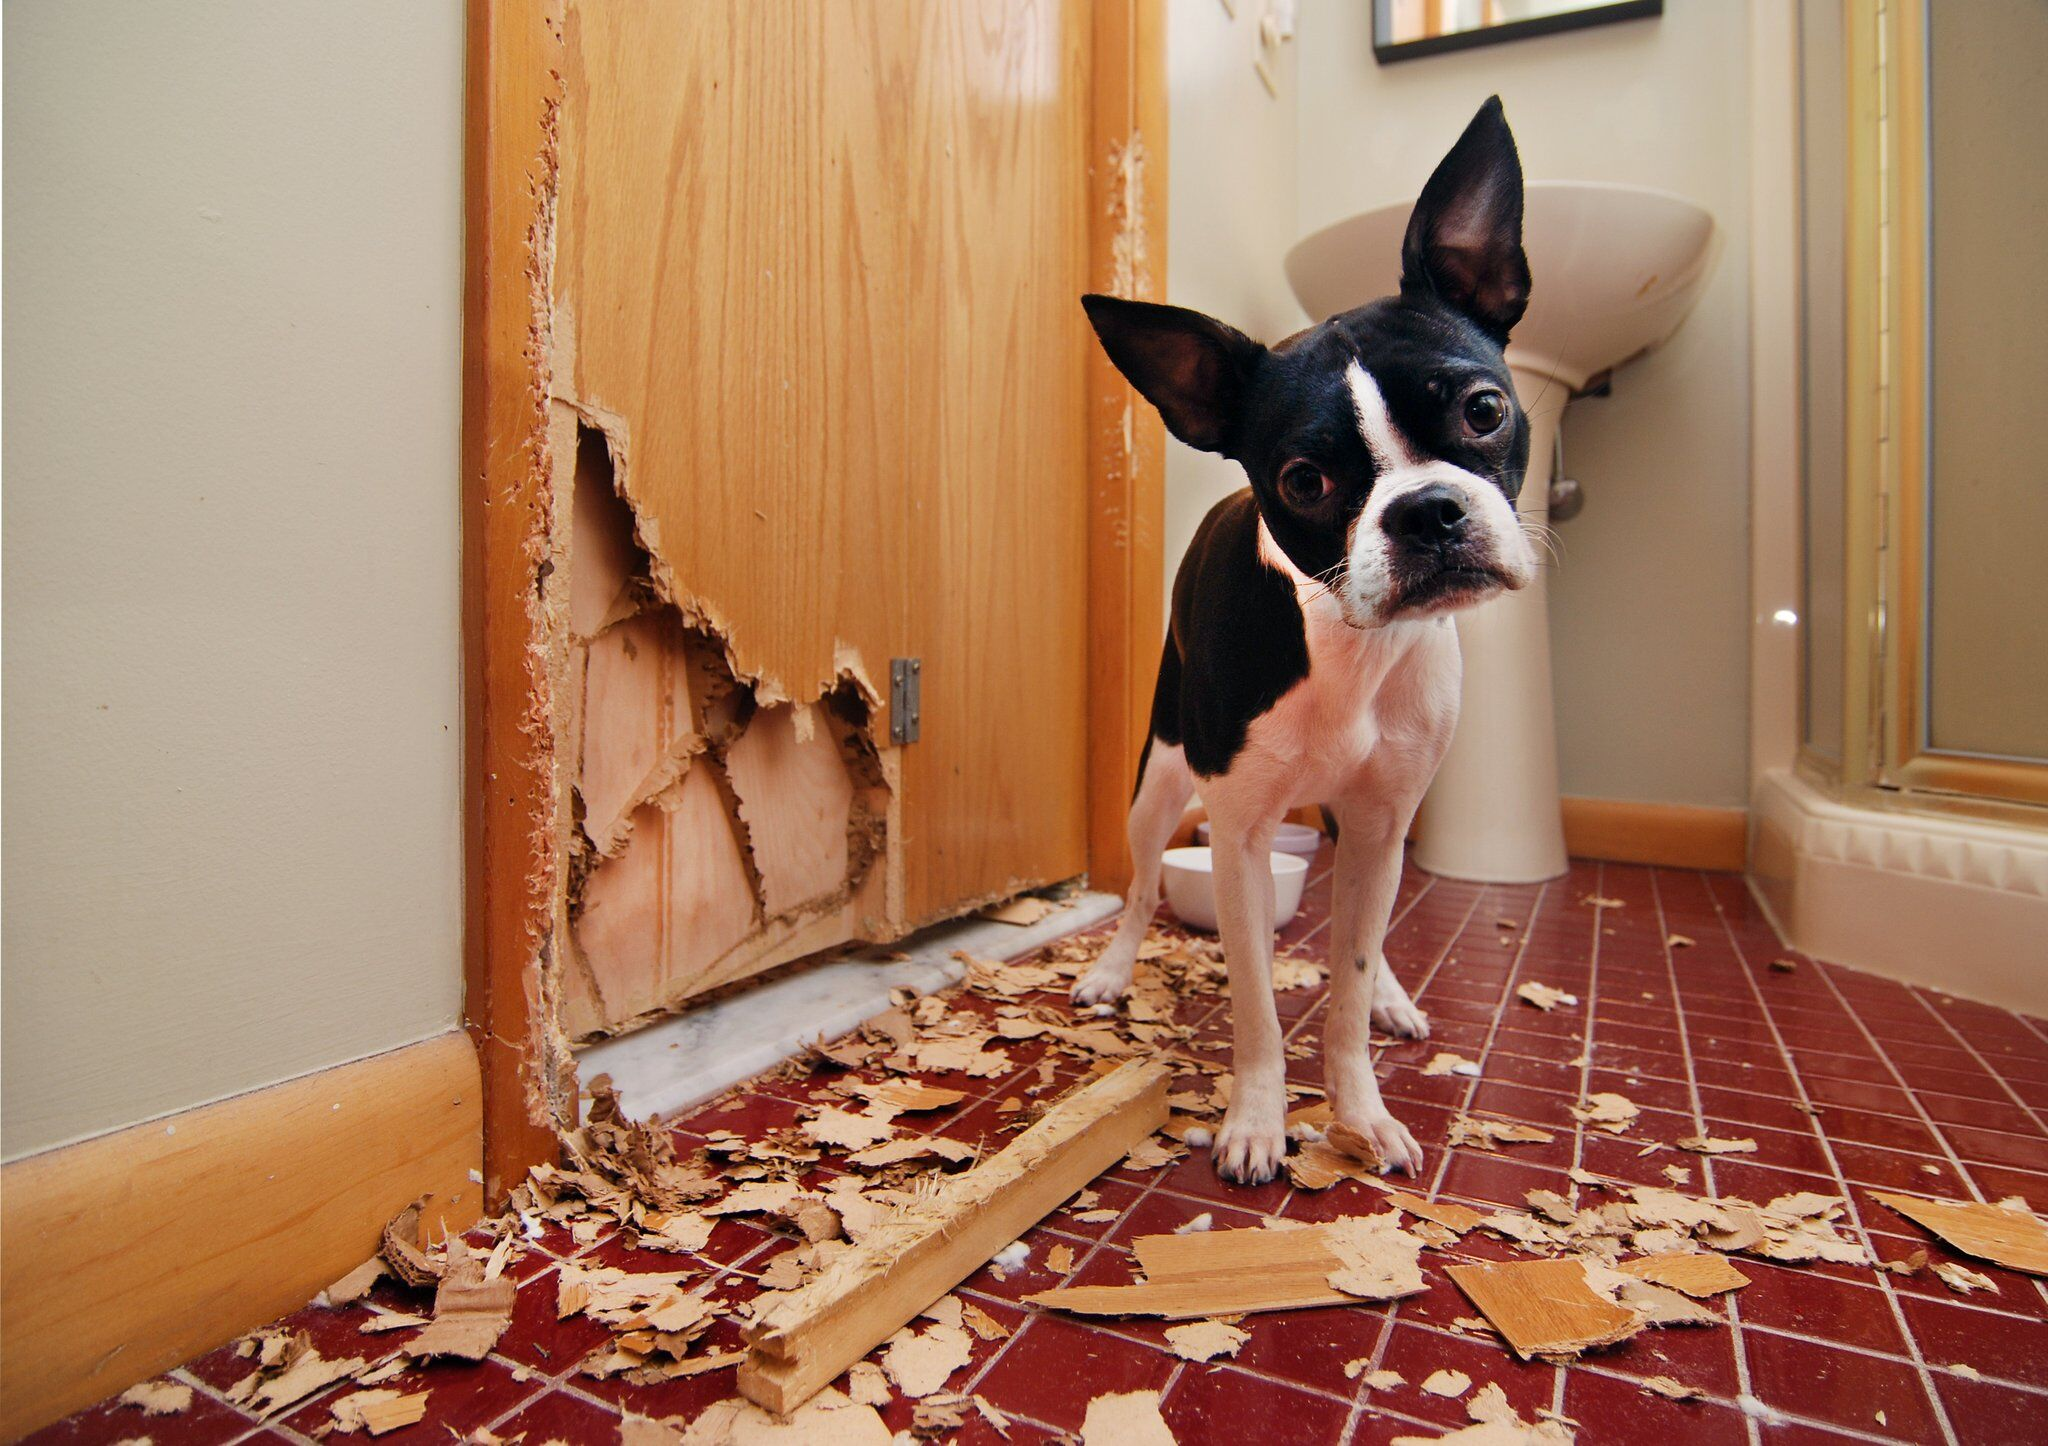 separation anxiety in dog's behavior could be destruction of property and home